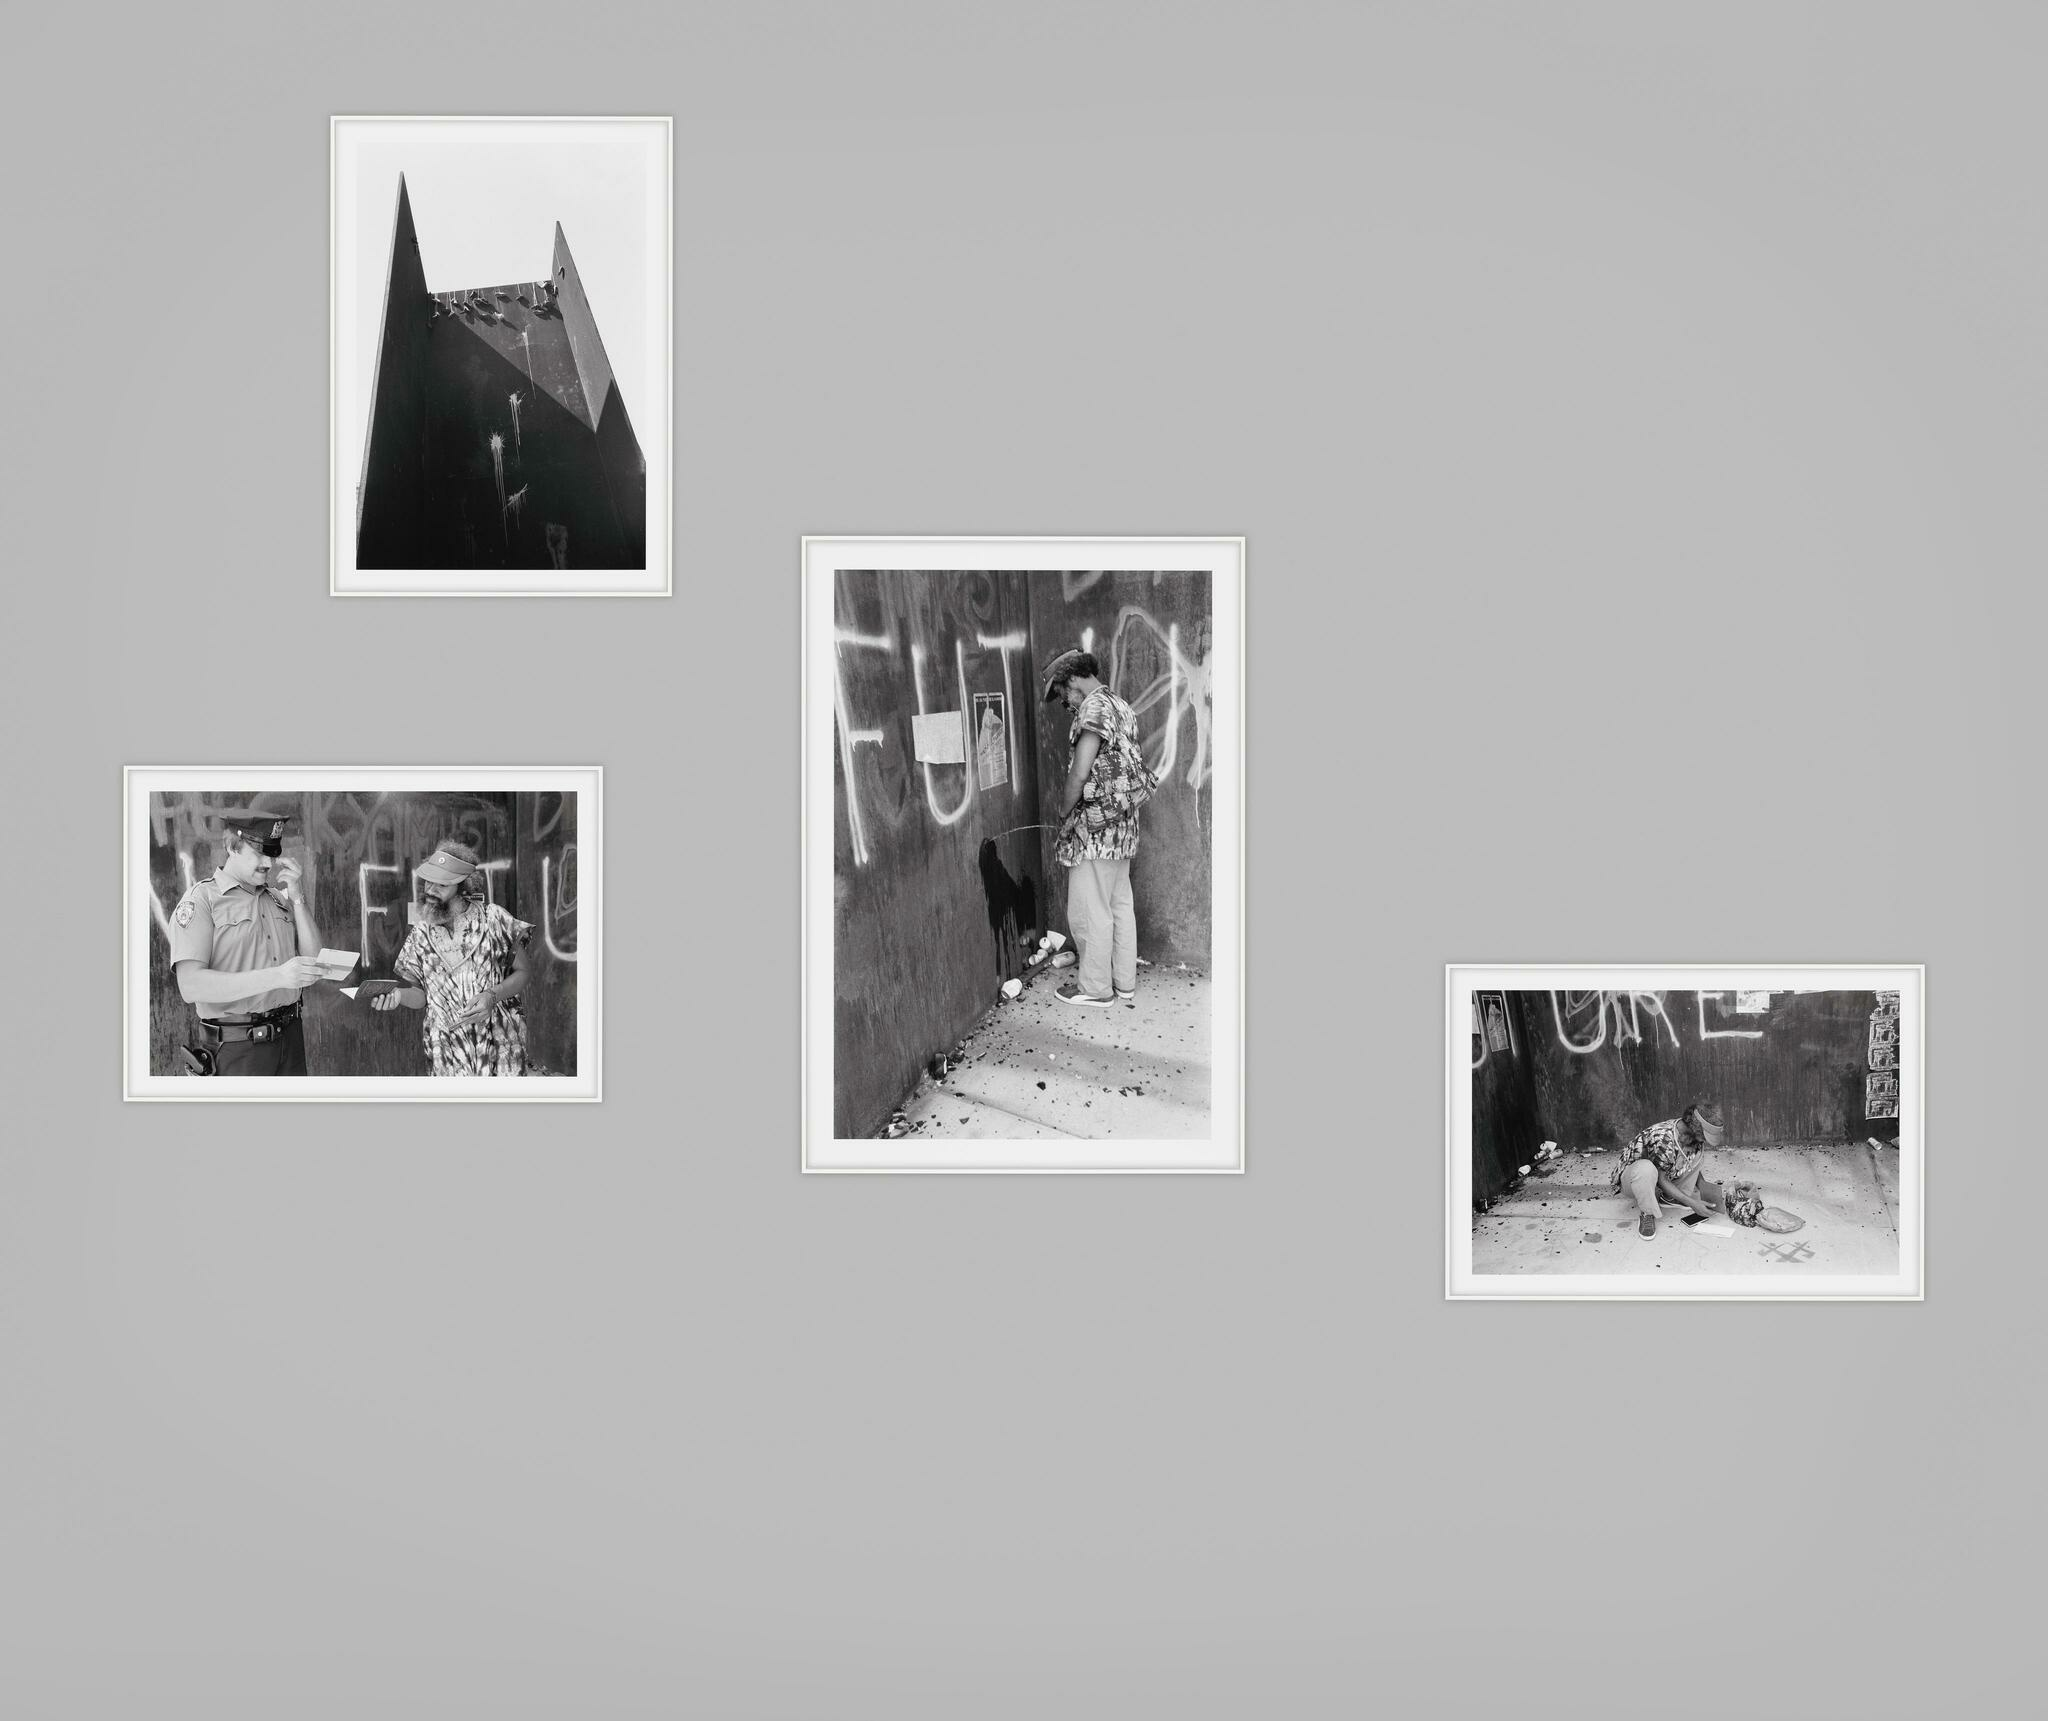 Photographs of steel sculpture. One with shoes dangling and three showing a Black man: urinating, crouching and with white police officer.